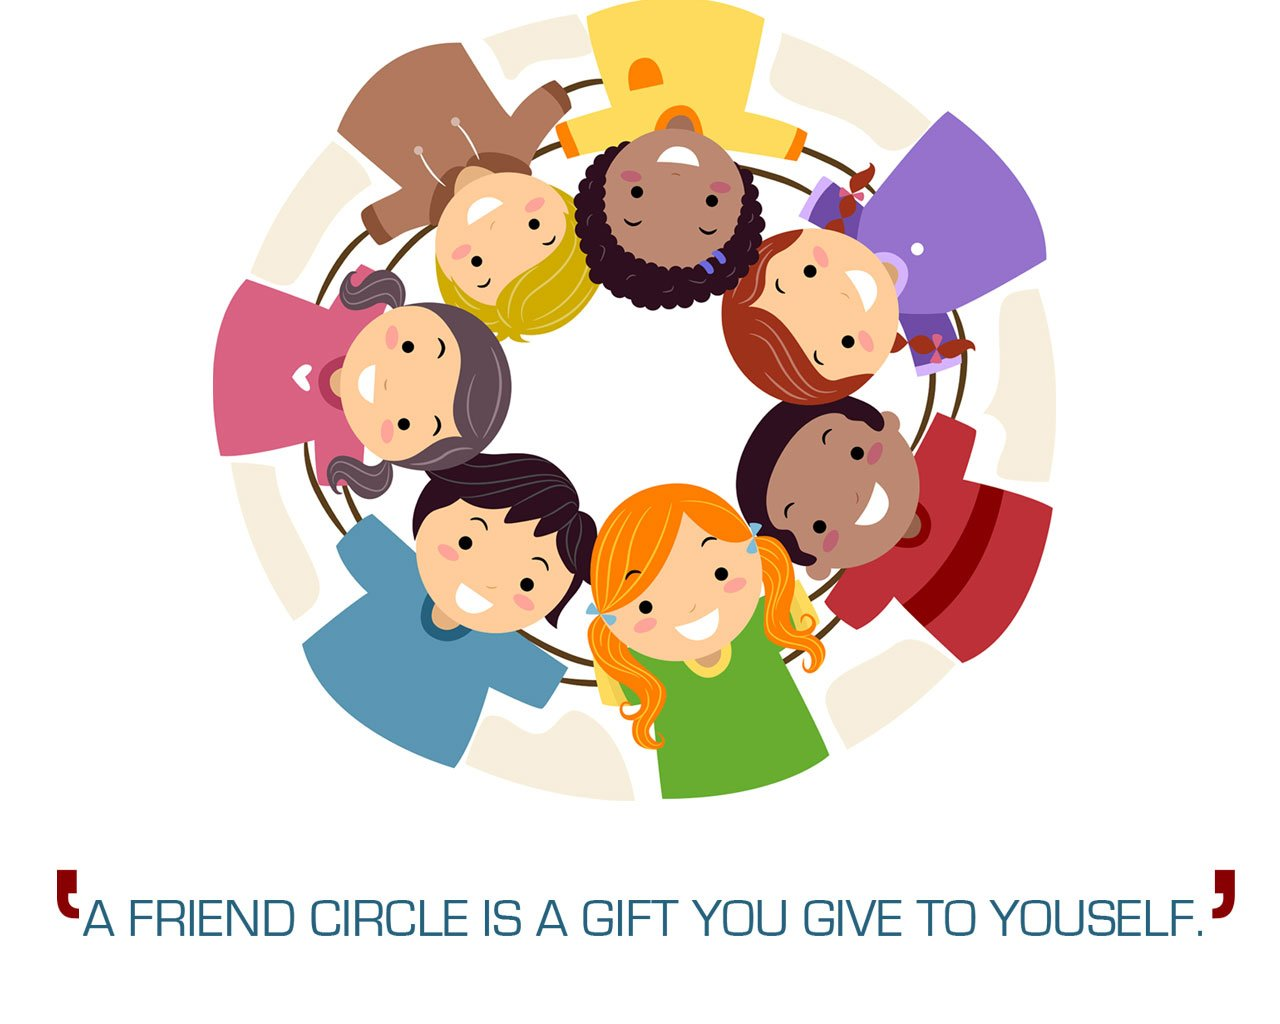 dating within your circle of friends Dating friends, dating your friends with benefits #sex buddies #friend circle #friends circle #circle of friends #fuck 2018 urban dictionary.